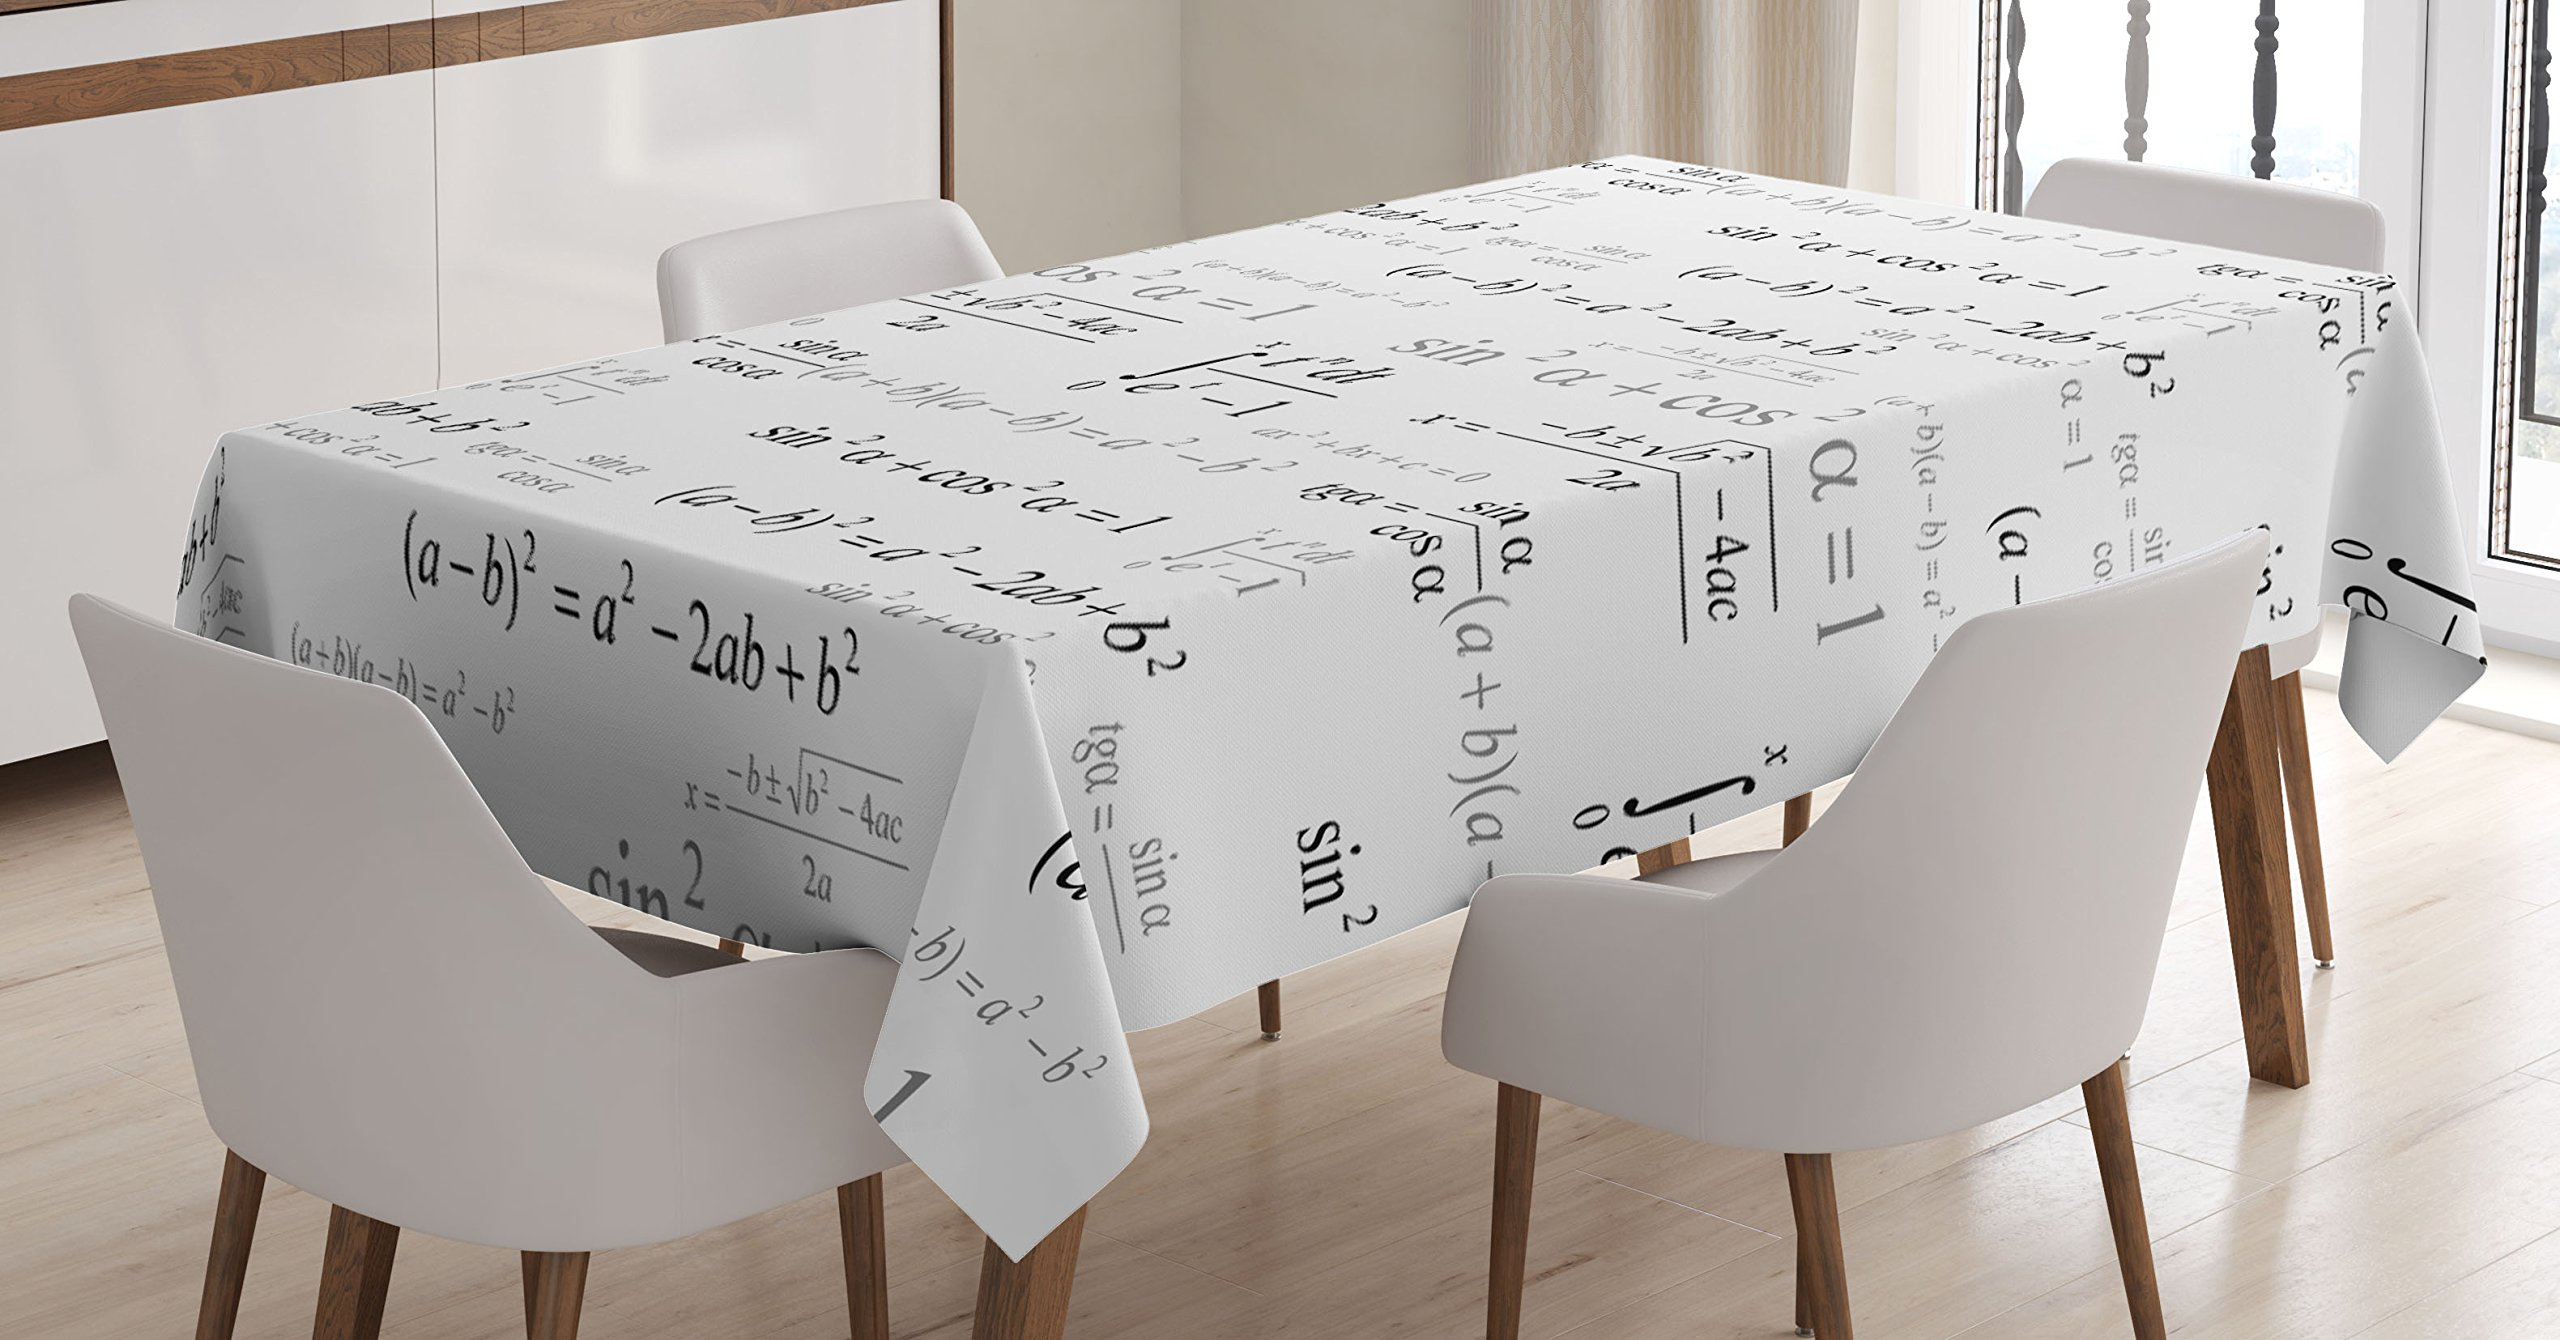 Ambesonne Kids Decor Tablecloth, School for Math and Geometry with Science Formules Chalk Board Style Image, Dining Room Kitchen Rectangular Table Cover, 60W X 90L inches, Black and White